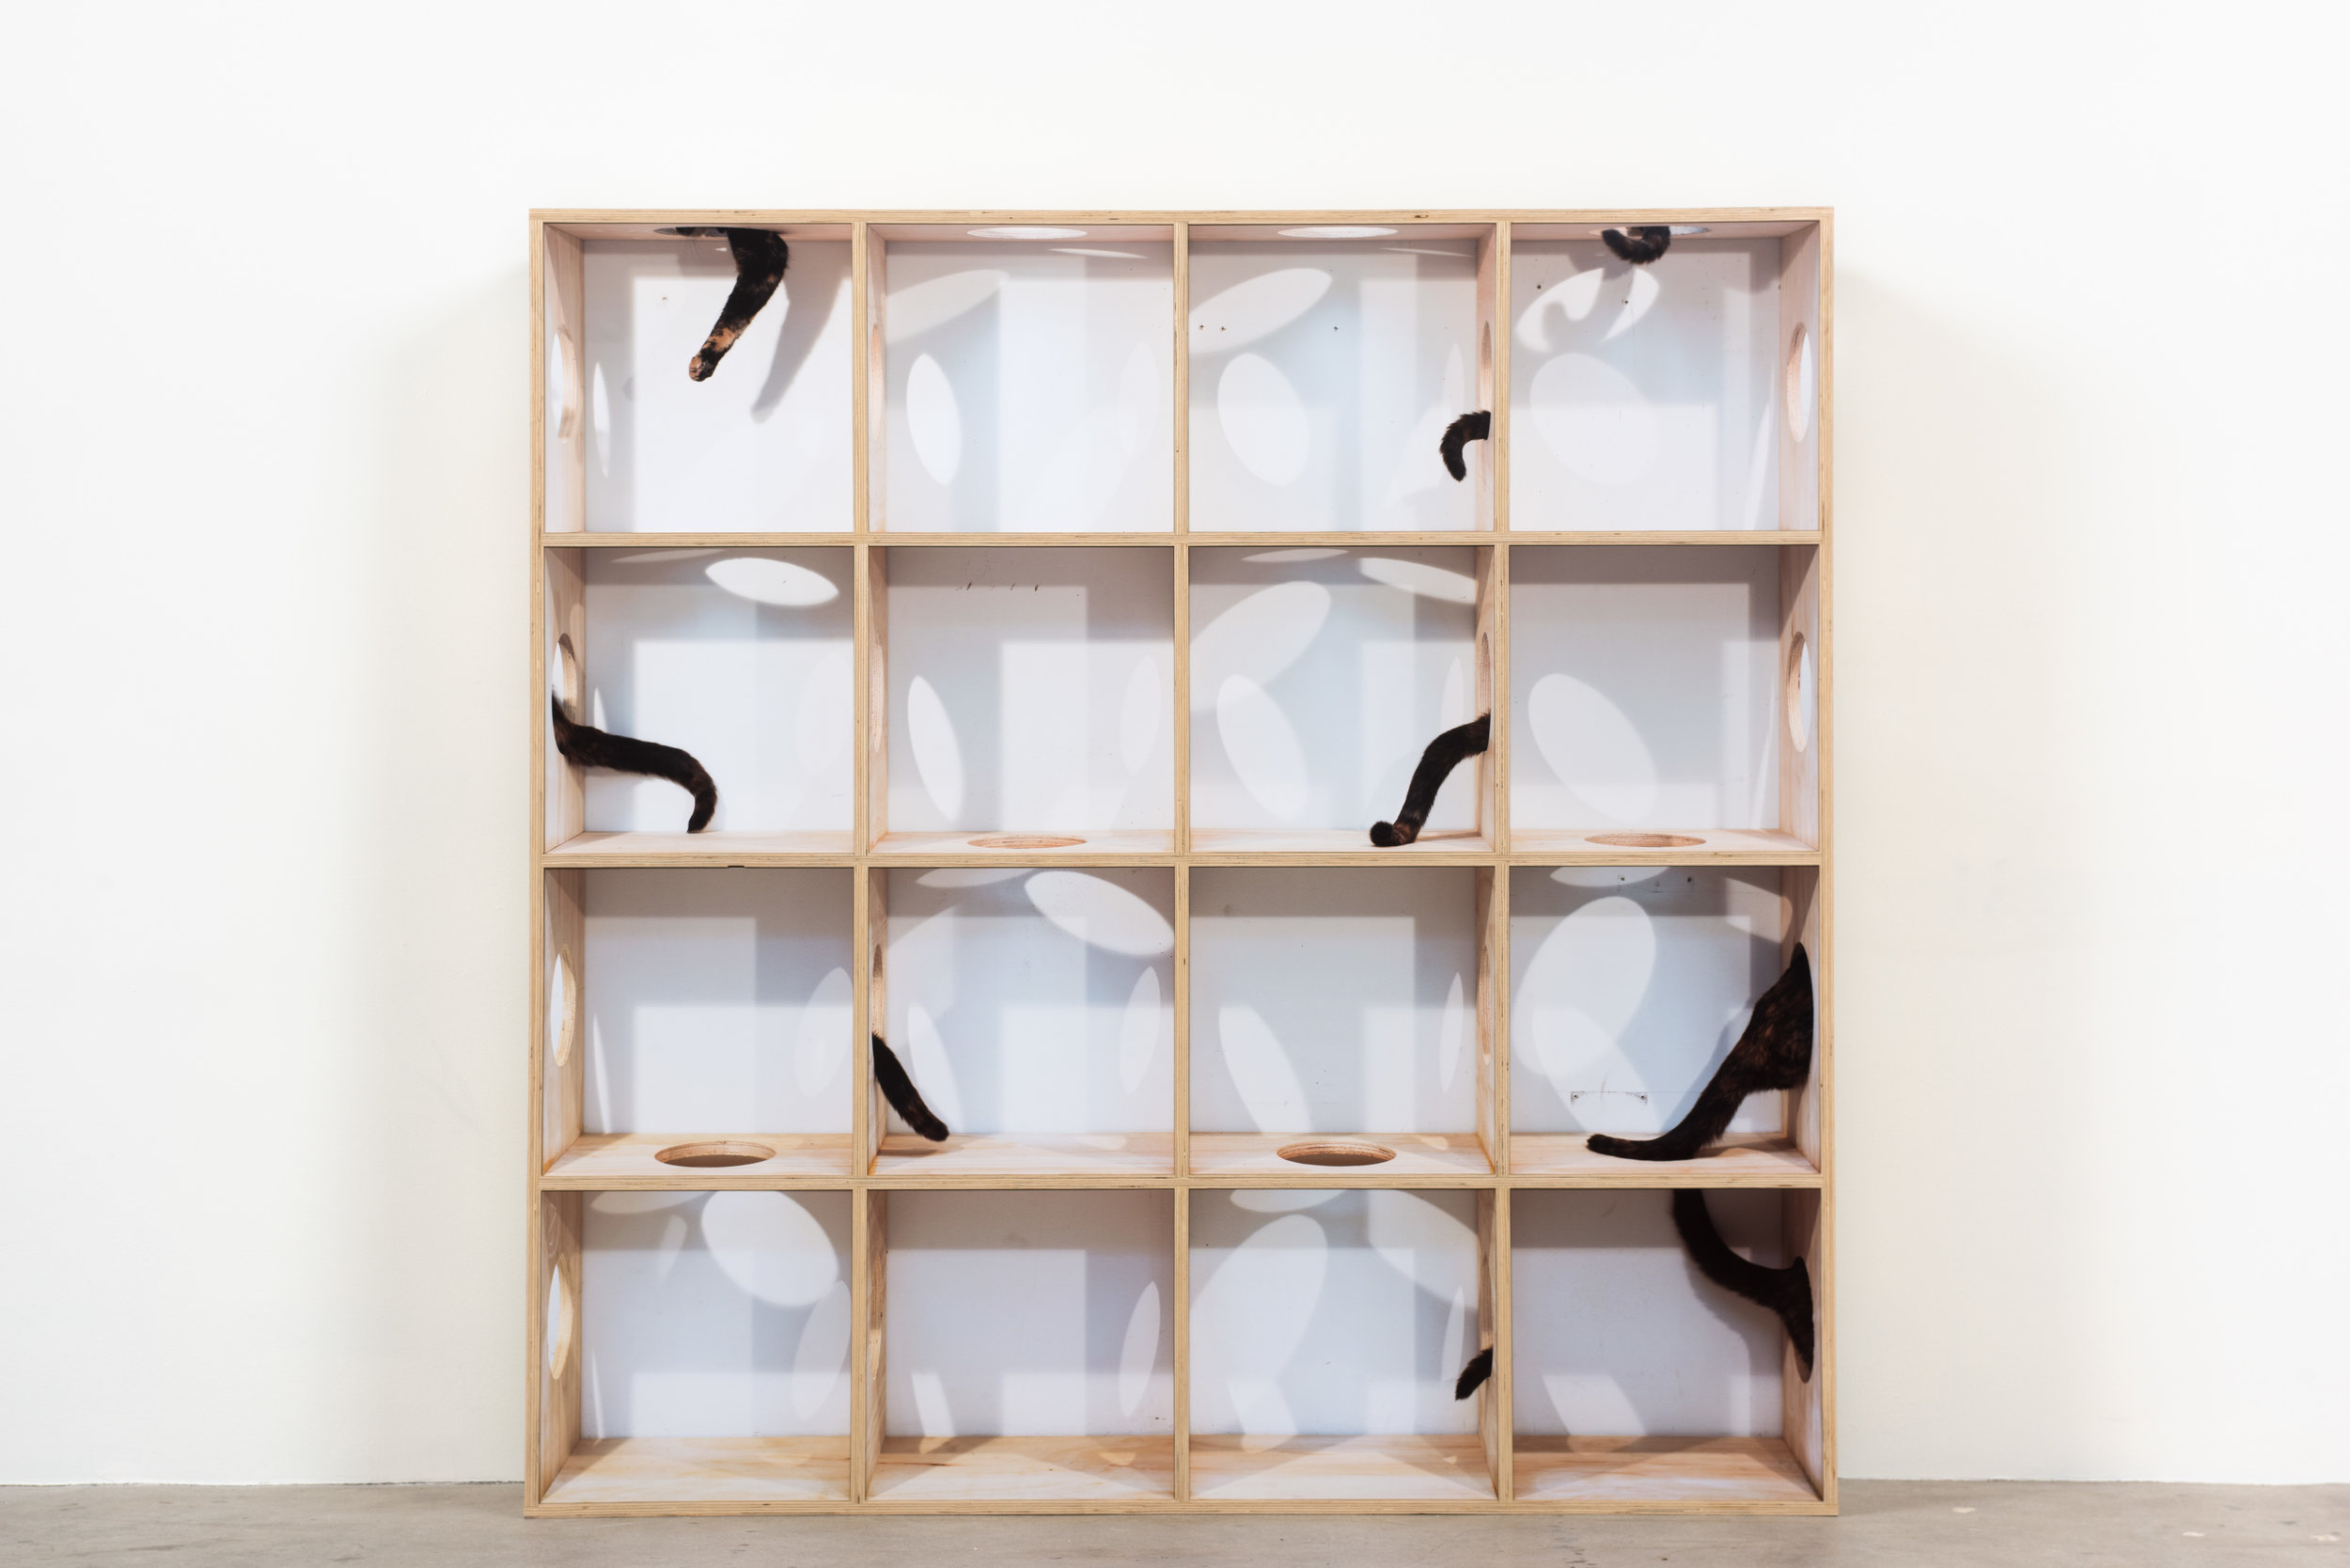 Disappearing Act , 2019 Archival pigment prints and wood 64 x 64 x 10 inches   ————